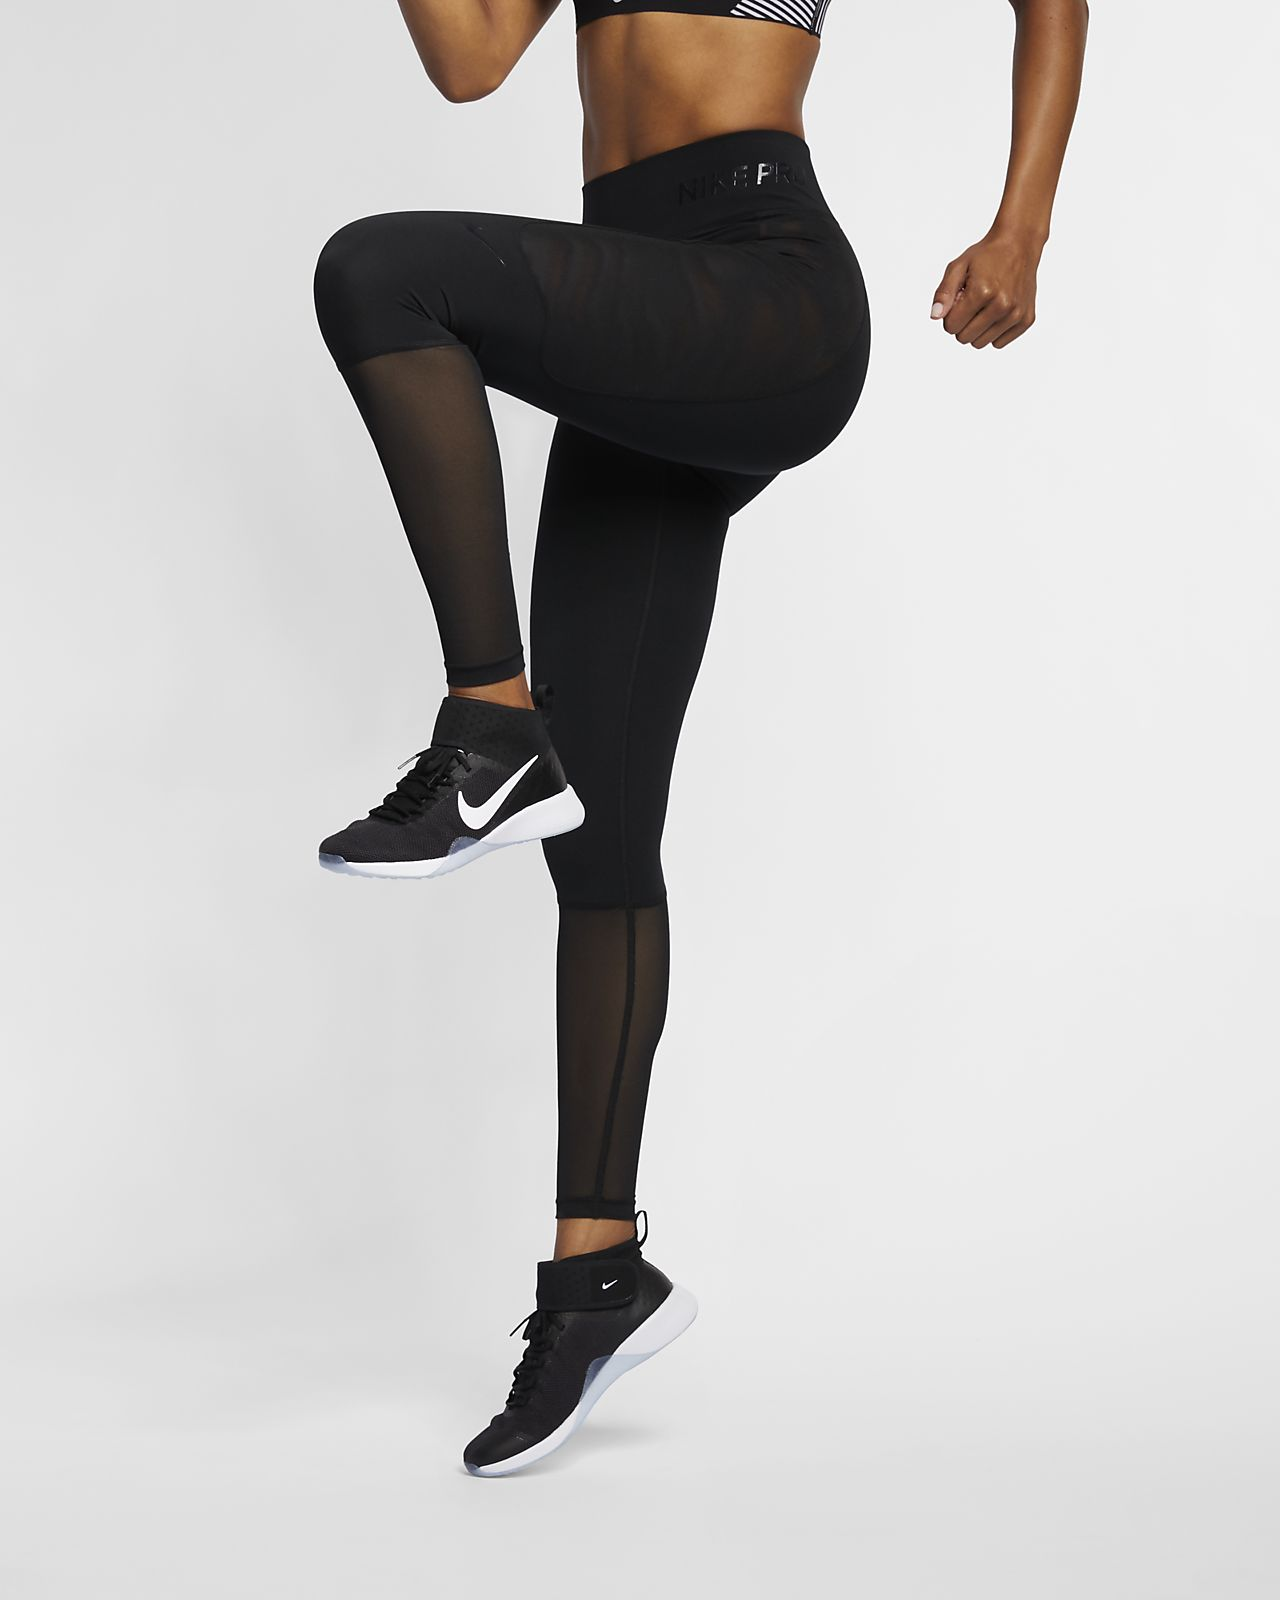 Nike Pro HyperCool Women's Leggings